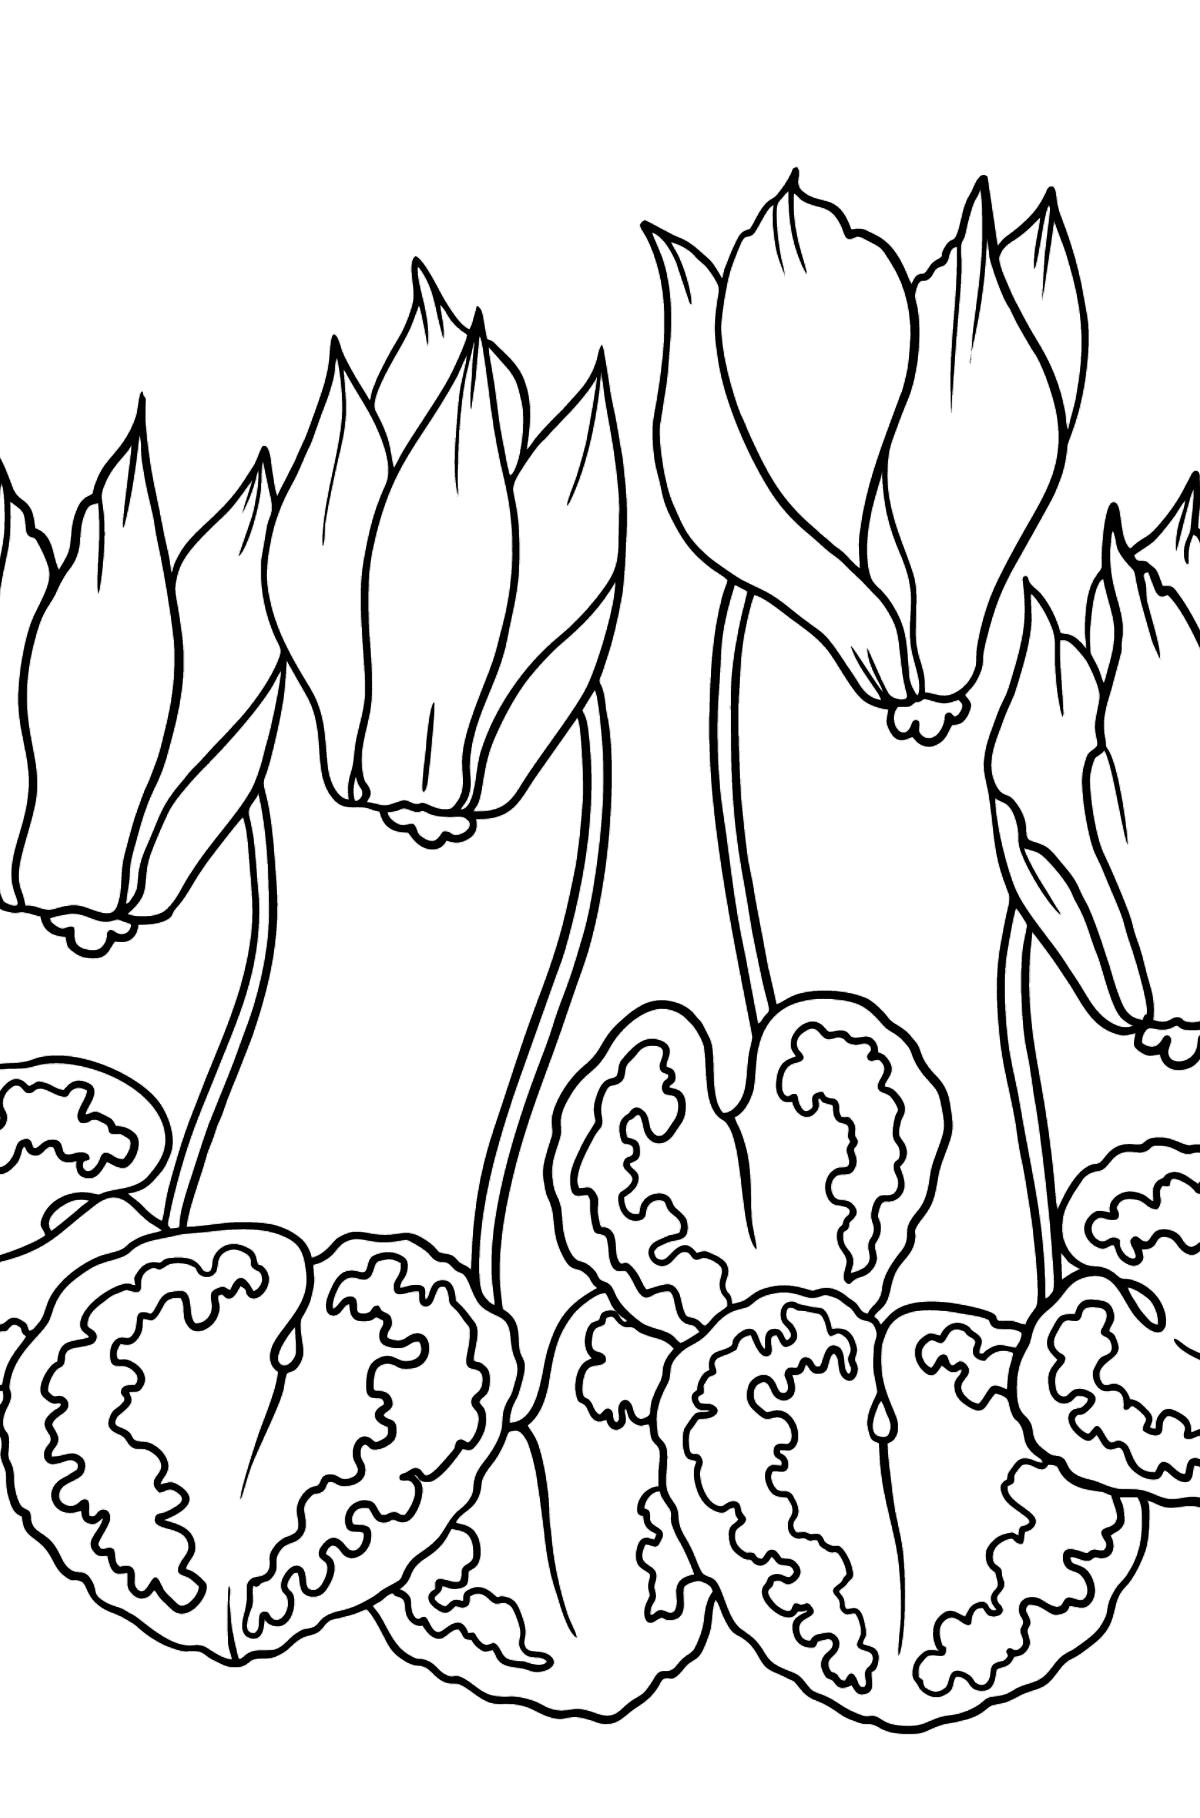 Flower Coloring Page - A Cyclamen with Red Petals - Coloring Pages for Kids